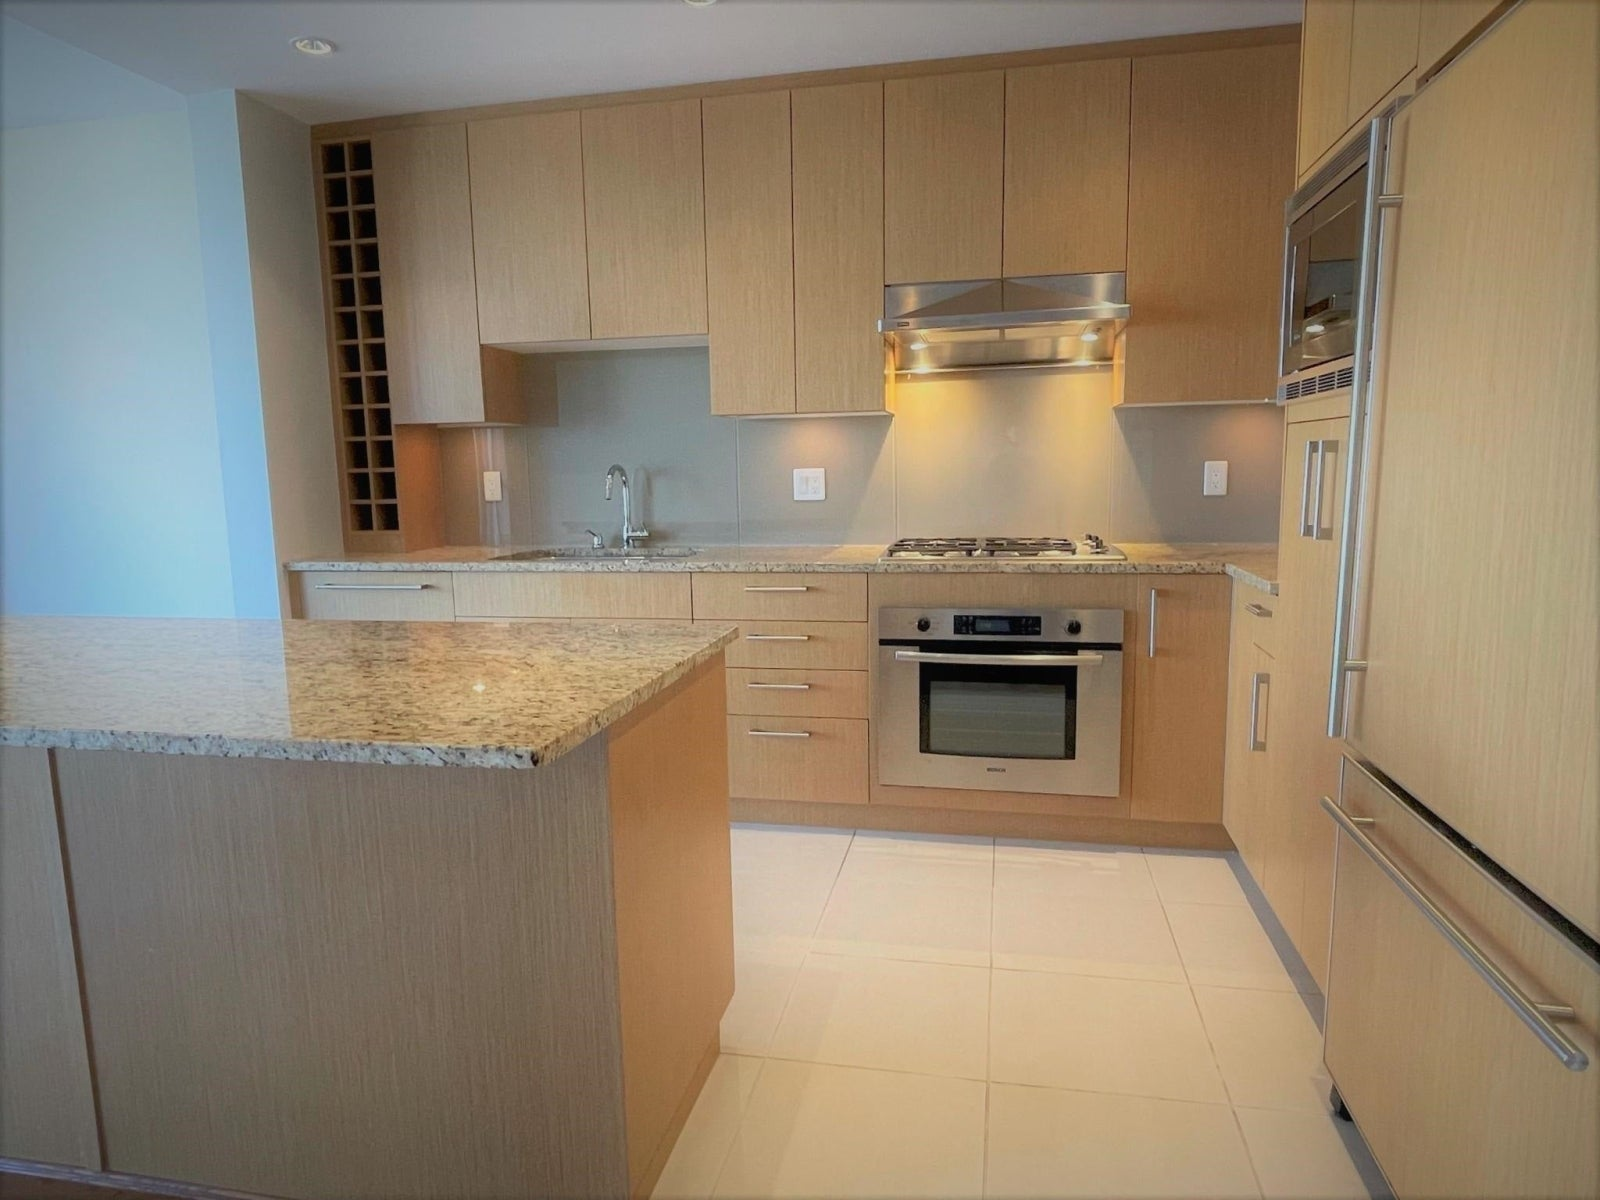 803 1333 W 11TH AVENUE - Fairview VW Apartment/Condo for sale, 2 Bedrooms (R2616288) #11